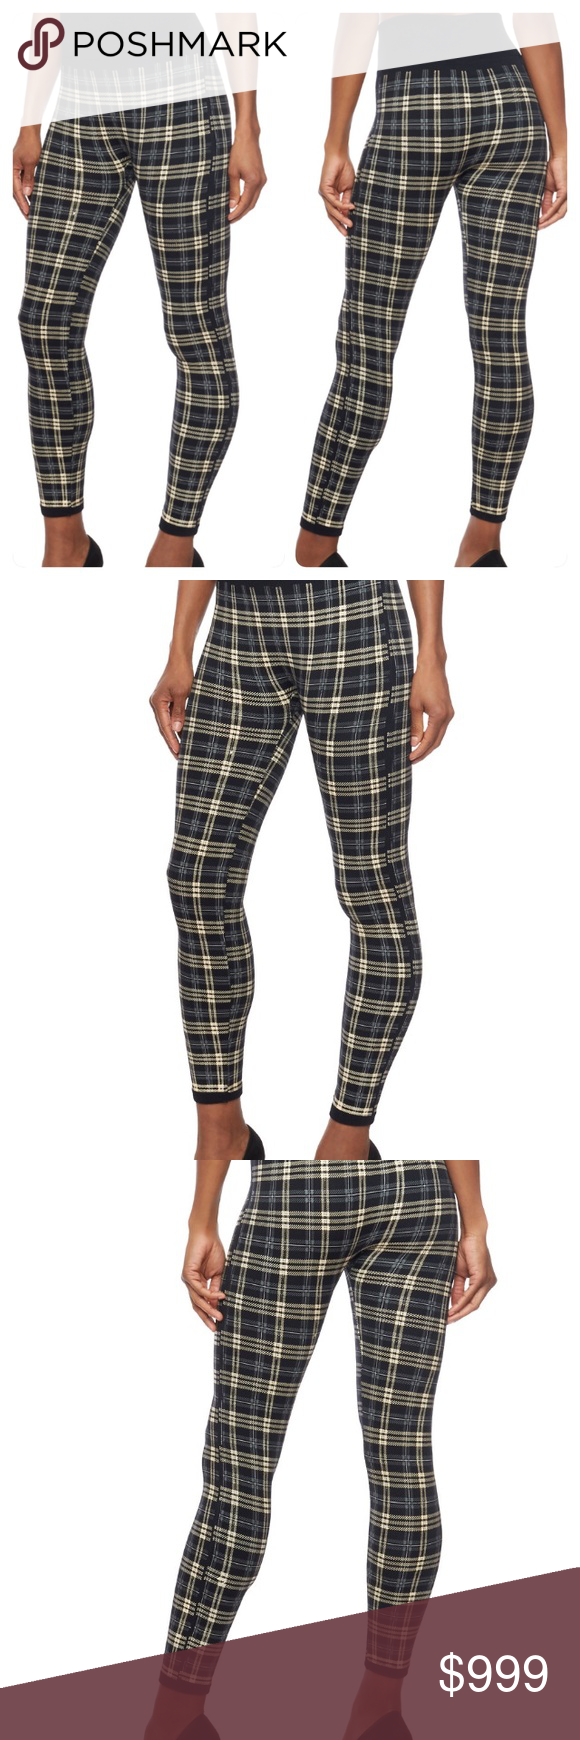 f30a797bf144f5 Plaid Leggings🌹 You'll be feeling festive and extra cute in these plaid  leggings